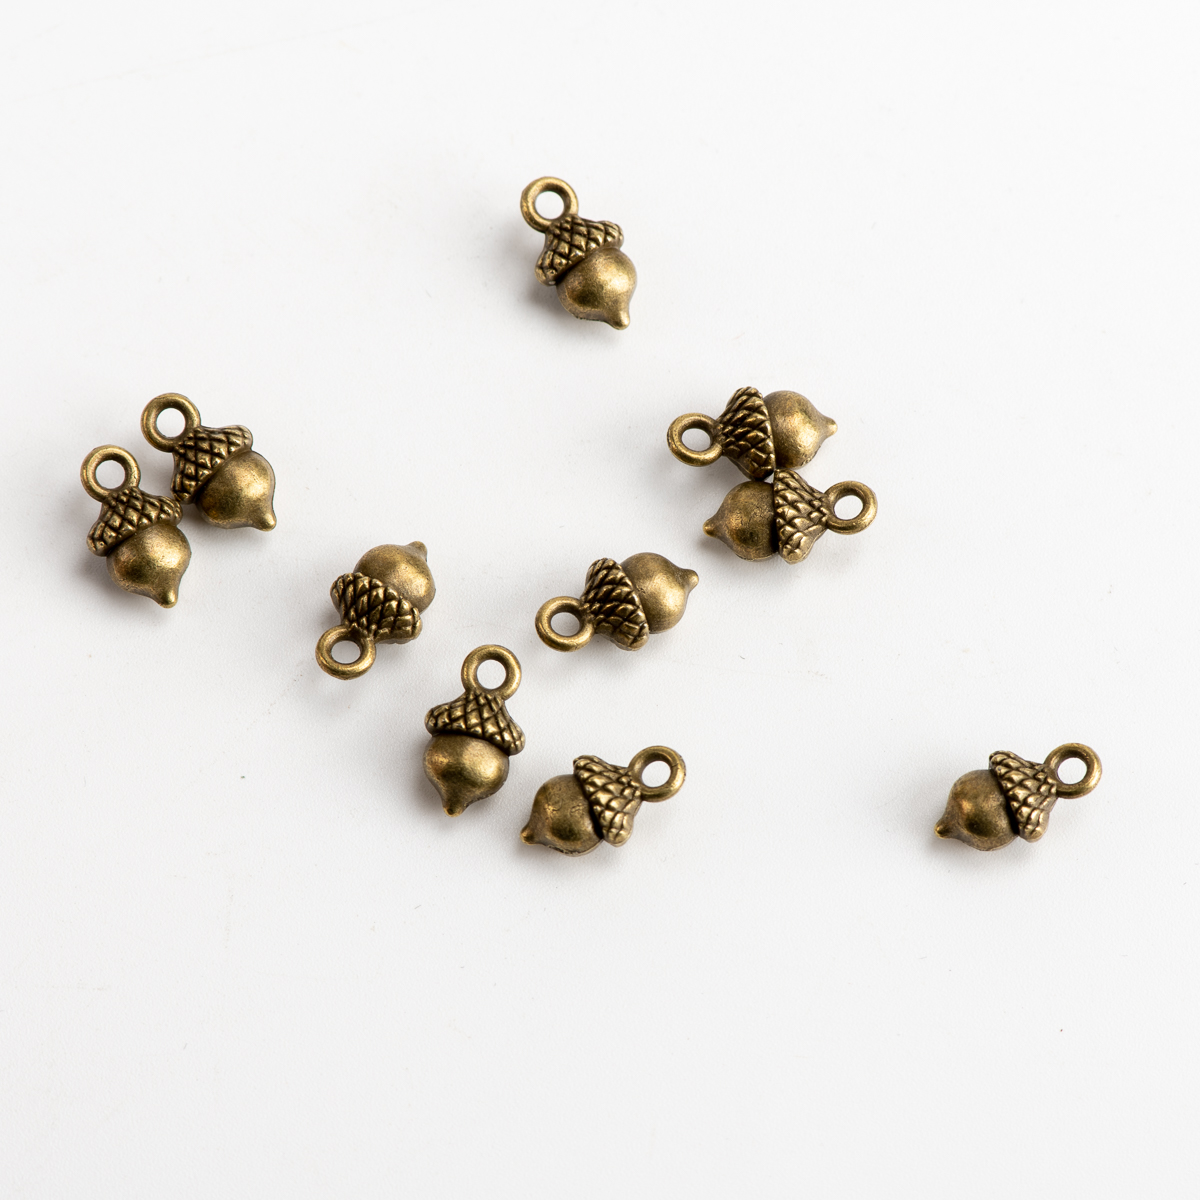 Pine Cone DIY Alloy Pendant Handicraft Accessories  Charms Jewelry Findings & Components For Jewelry Making #JZ412